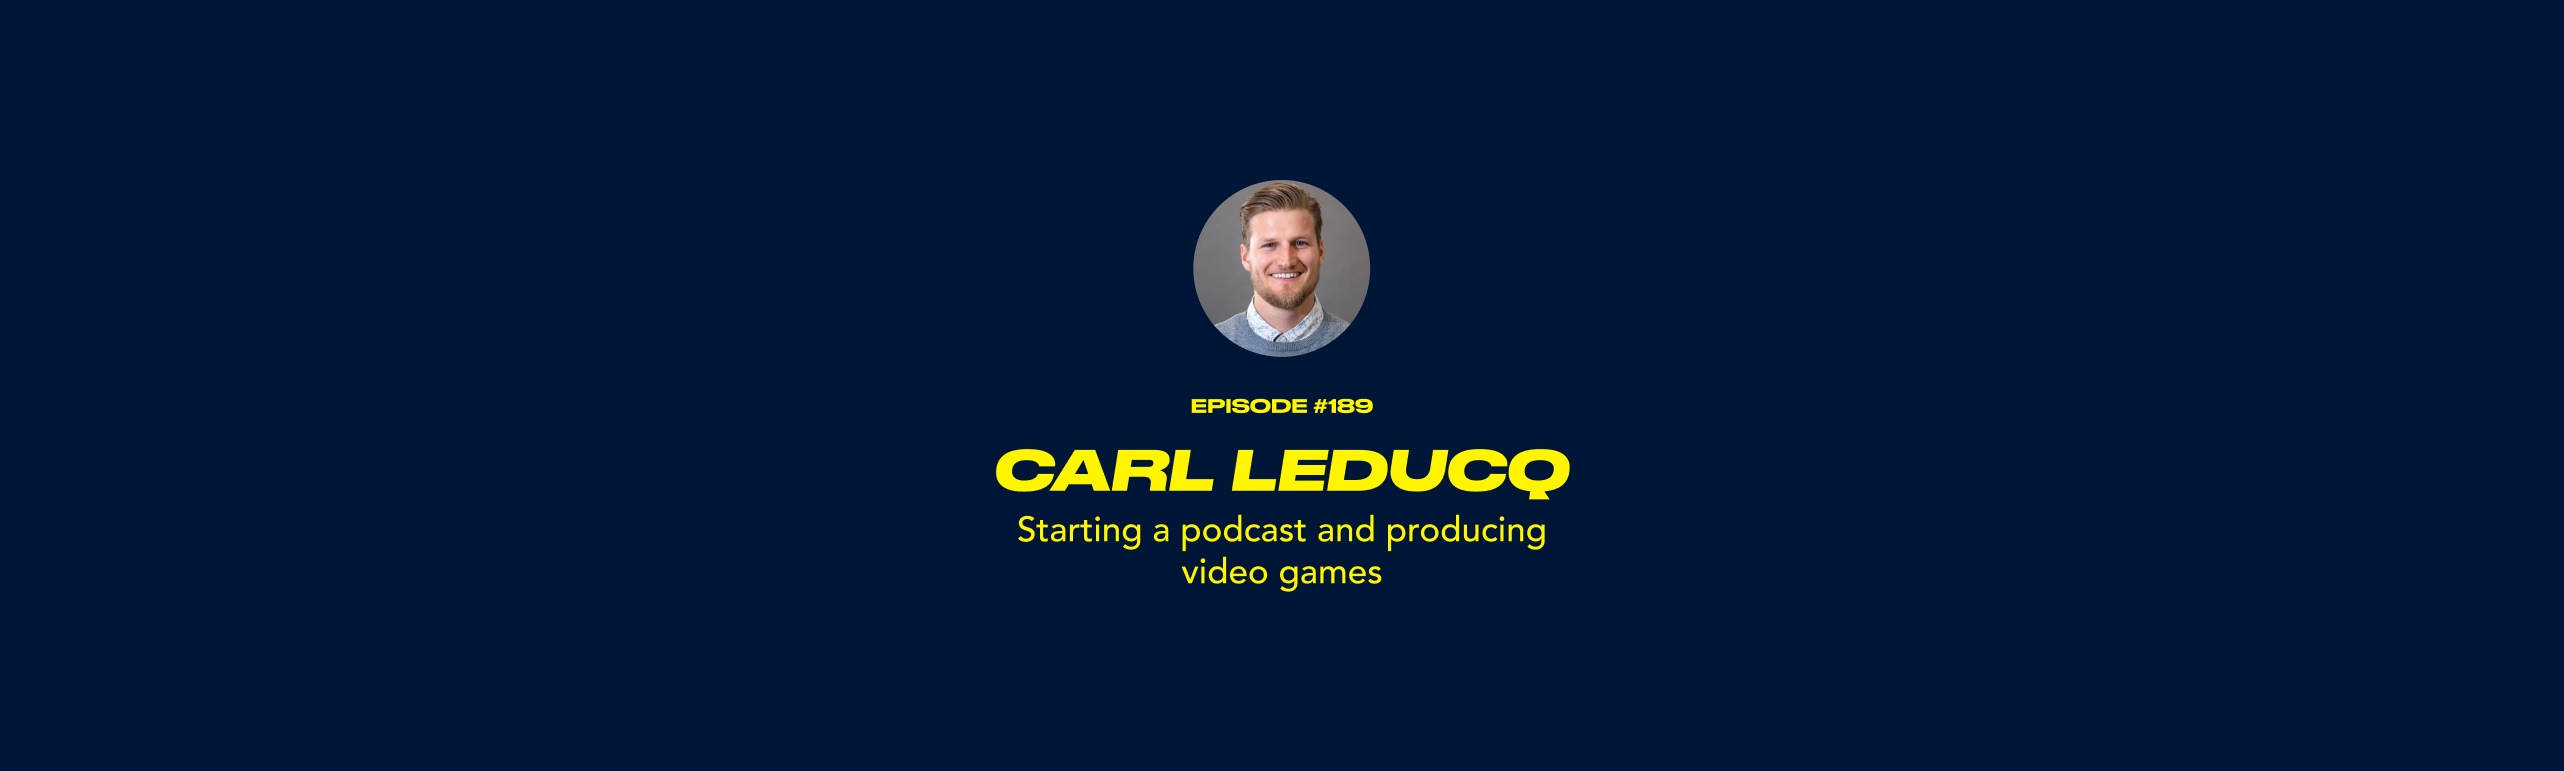 Carl Leducq - Starting a podcast and producing video games